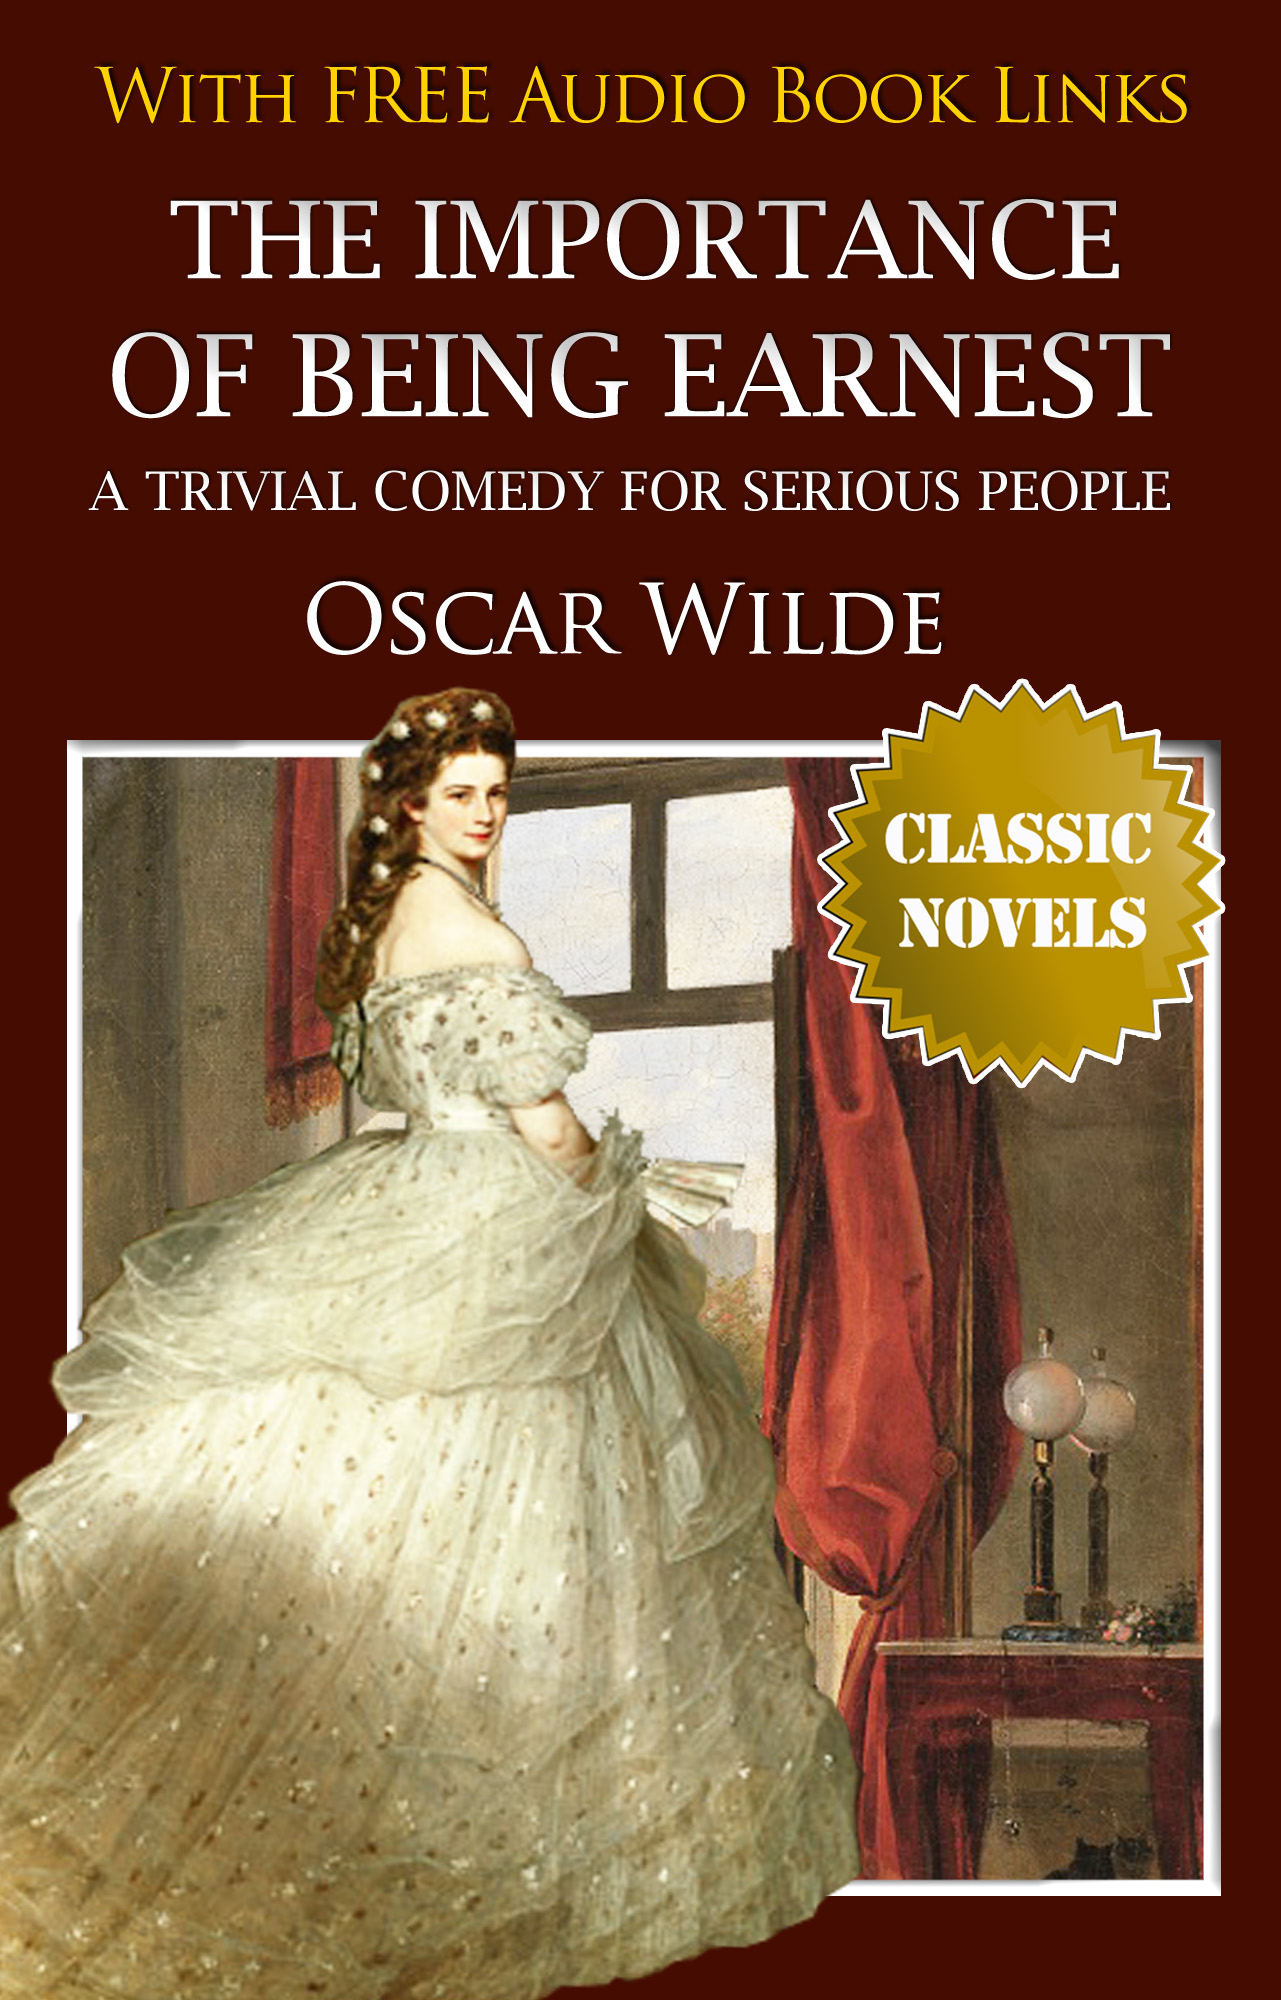 Oscar Wilde - THE IMPORTANCE OF BEING EARNEST  Classic Novels: New Illustrated [Free Audio Links]